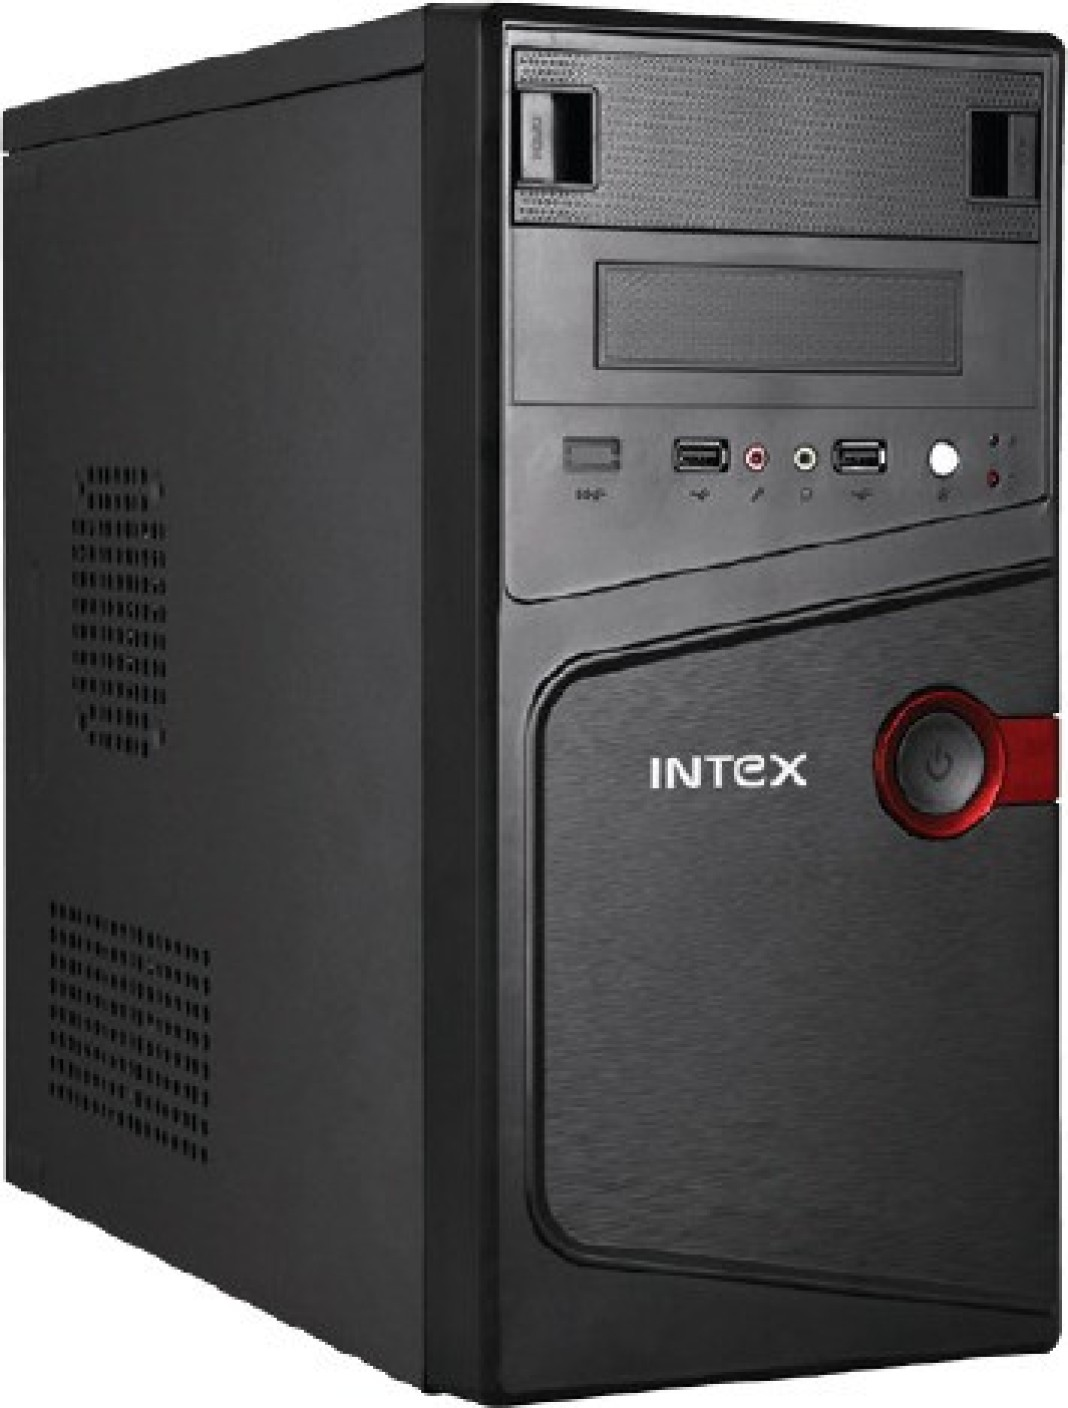 Intelindia: Intex 320gb Assembled CPU With Core2Duo 2 GB RAM 320 GB